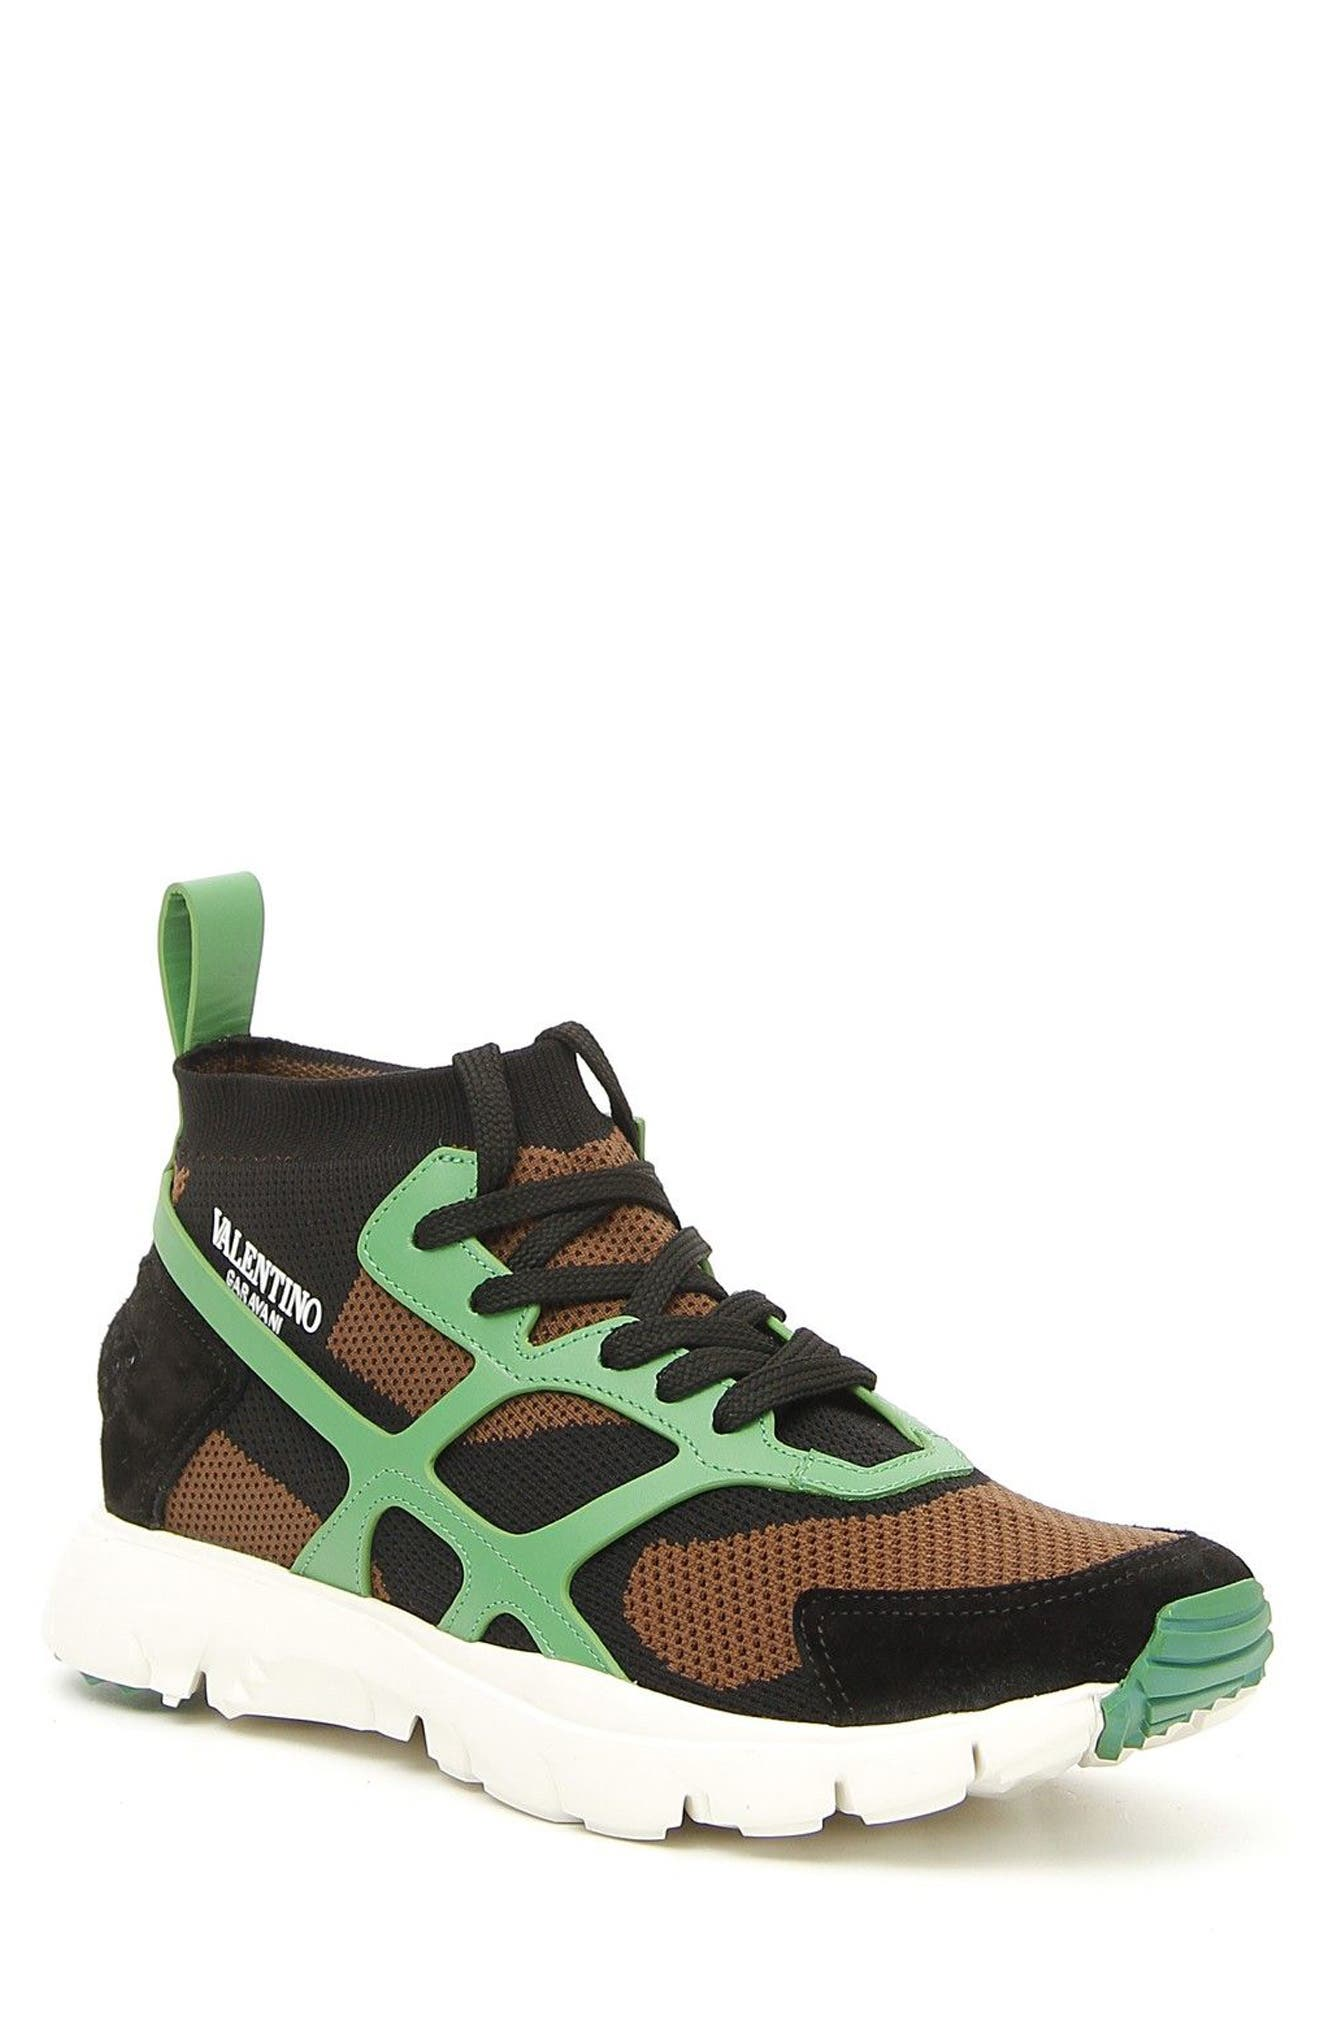 Sound High Sneaker,                             Main thumbnail 1, color,                             Army Green/ Nero/ Green